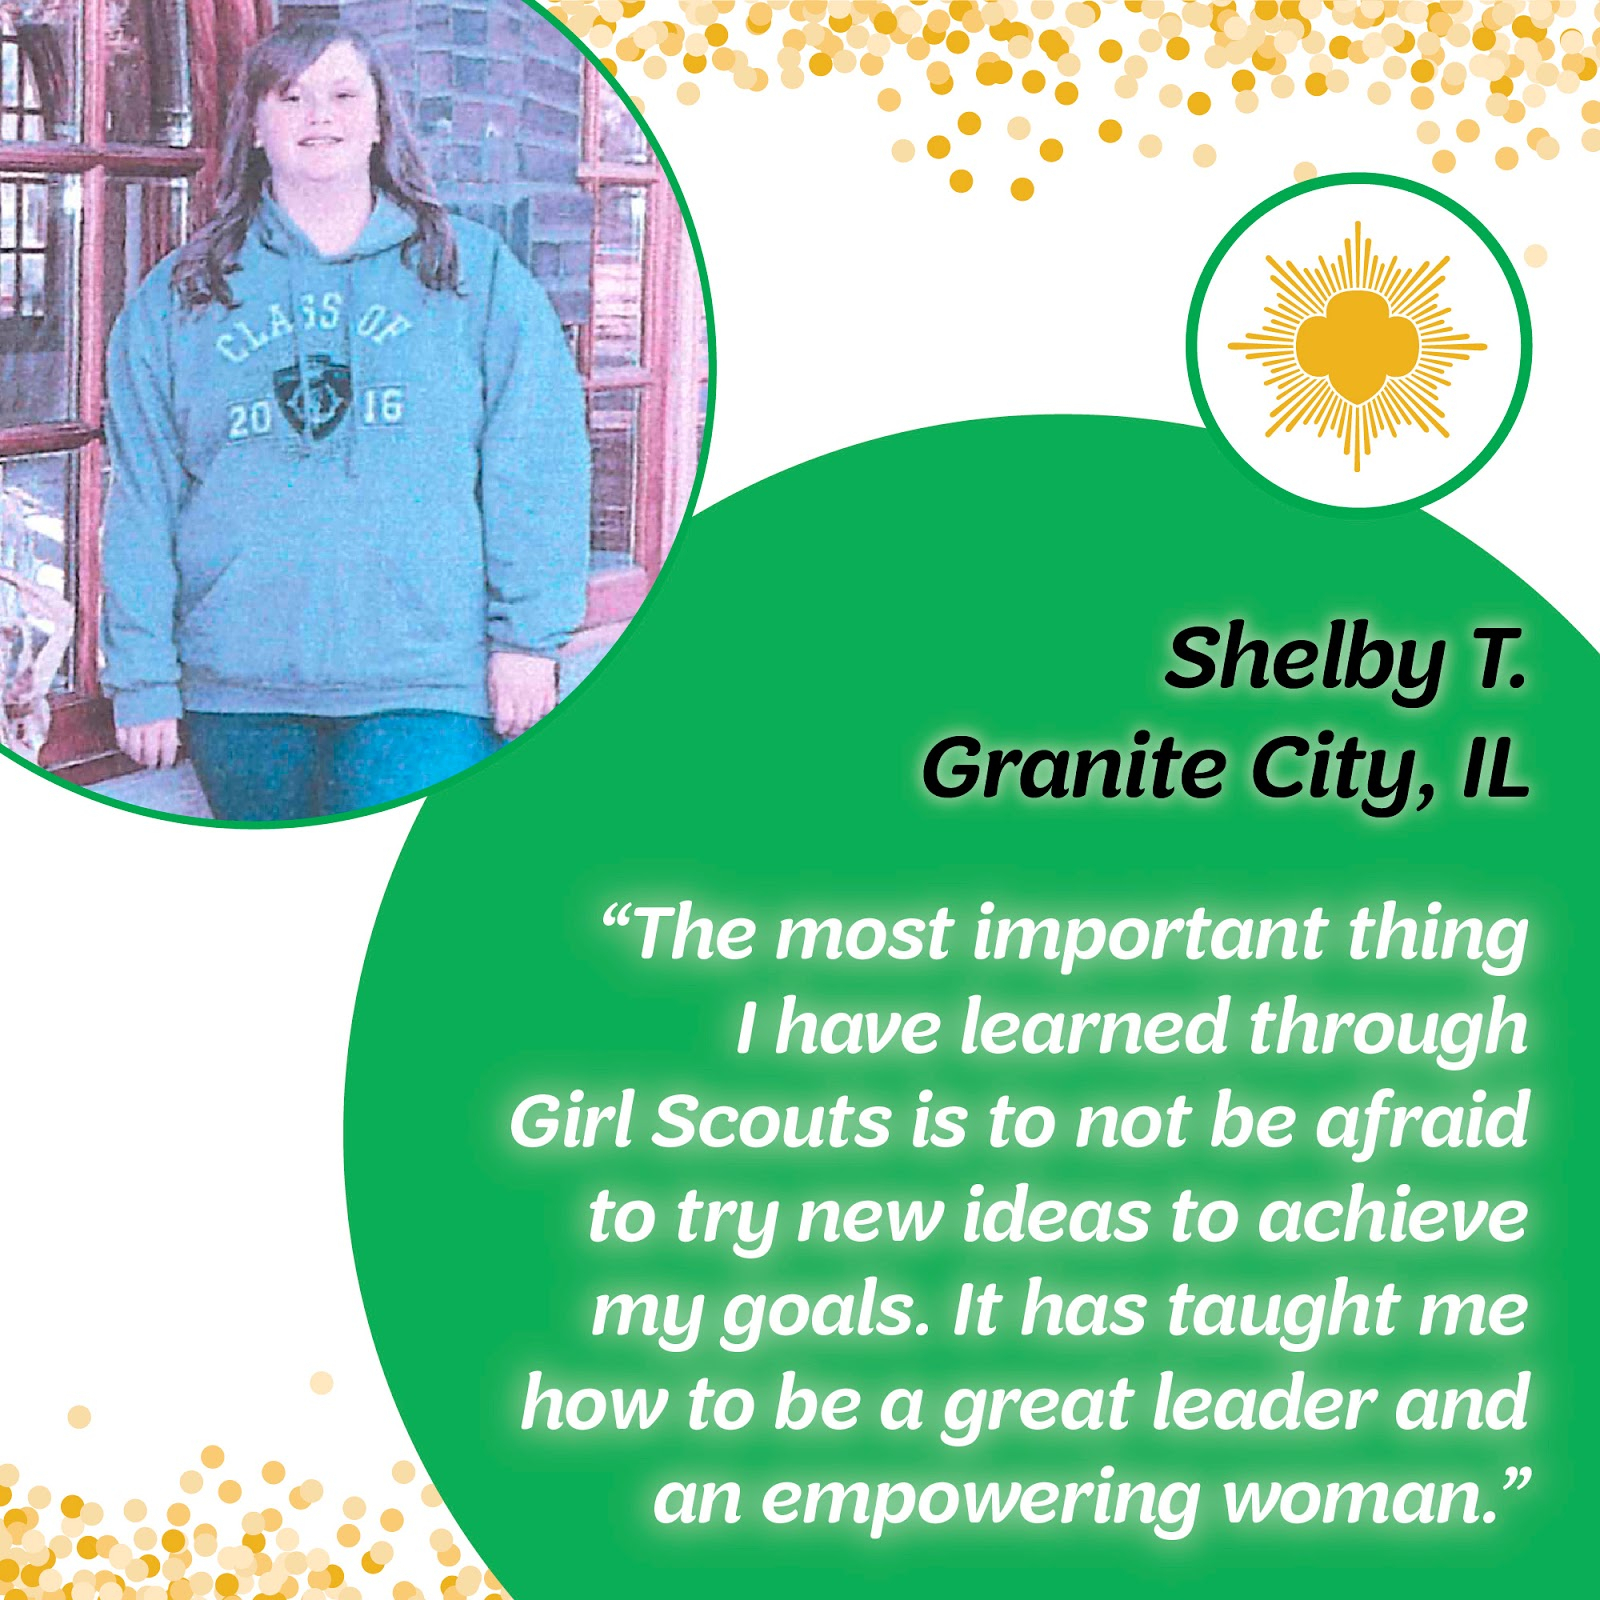 10 Unique Girl Scouts Gold Award Ideas girl scouts of southern illinois shelby tingley from granite city 2021